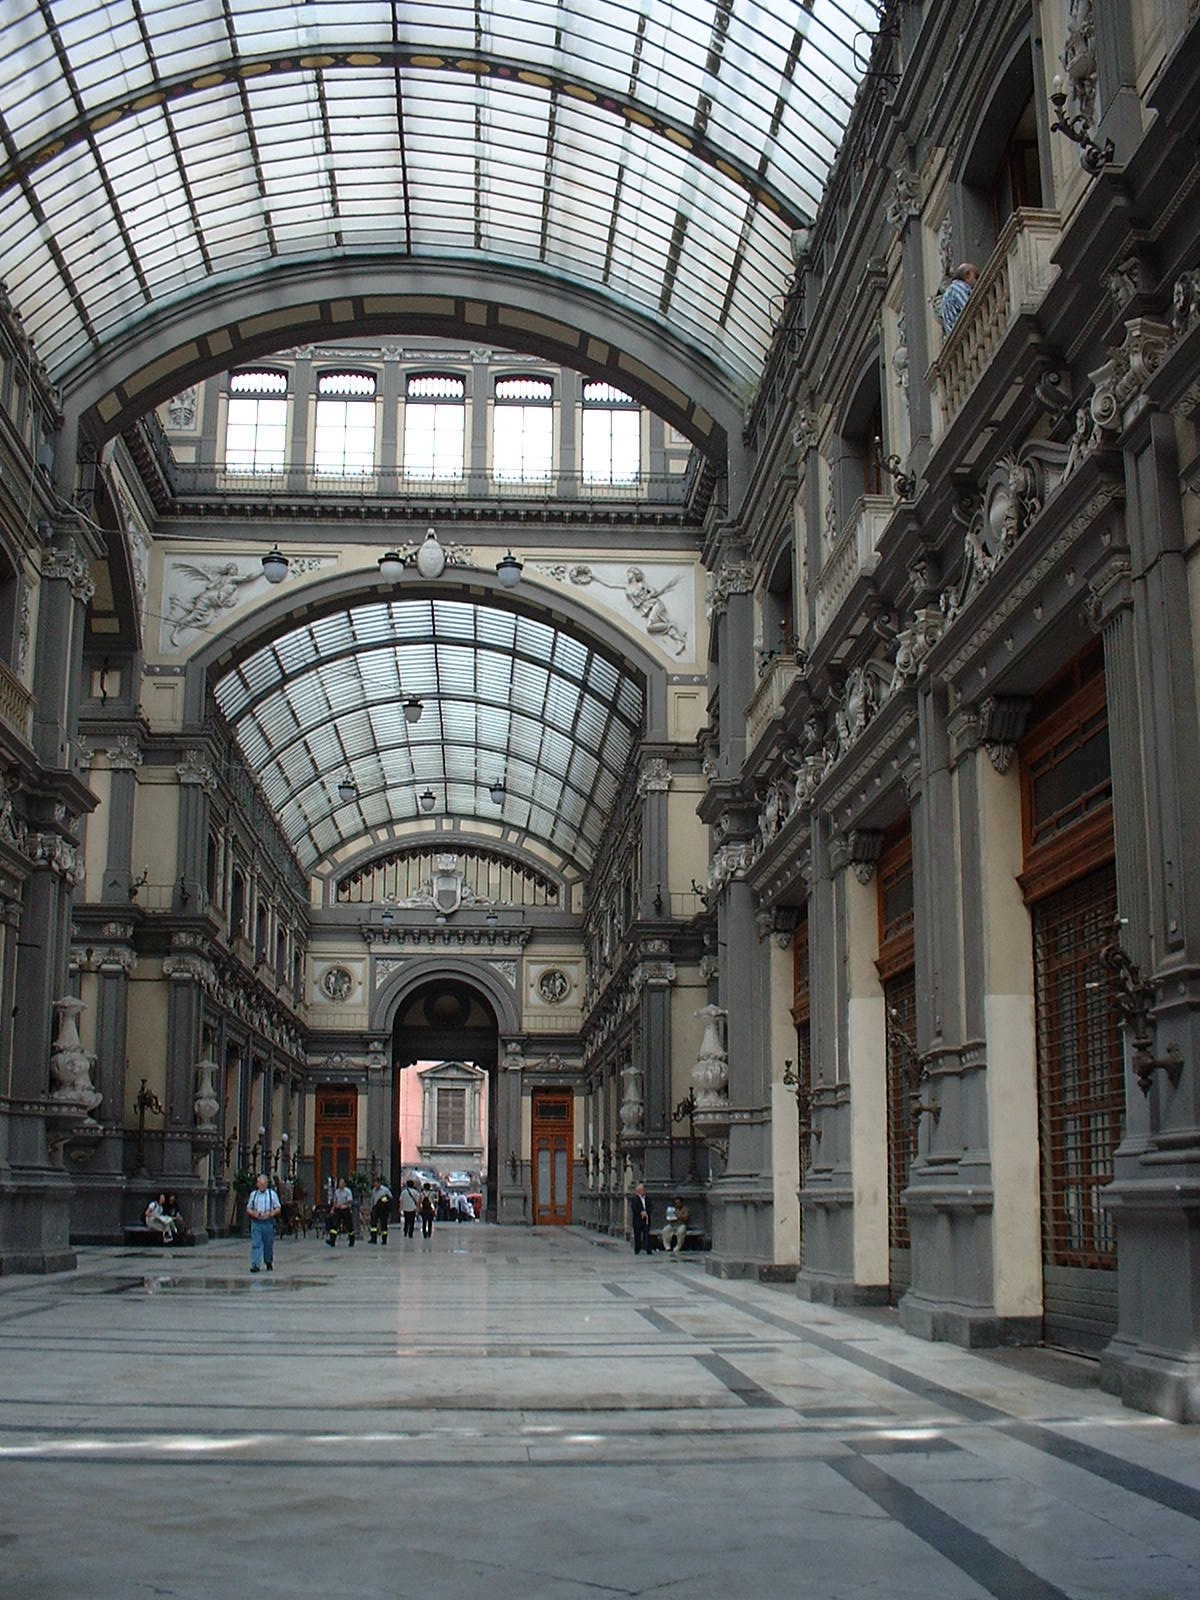 http://upload.wikimedia.org/wikipedia/commons/9/91/Galleria_Principe_di_Napoli%2C_2002.jpg